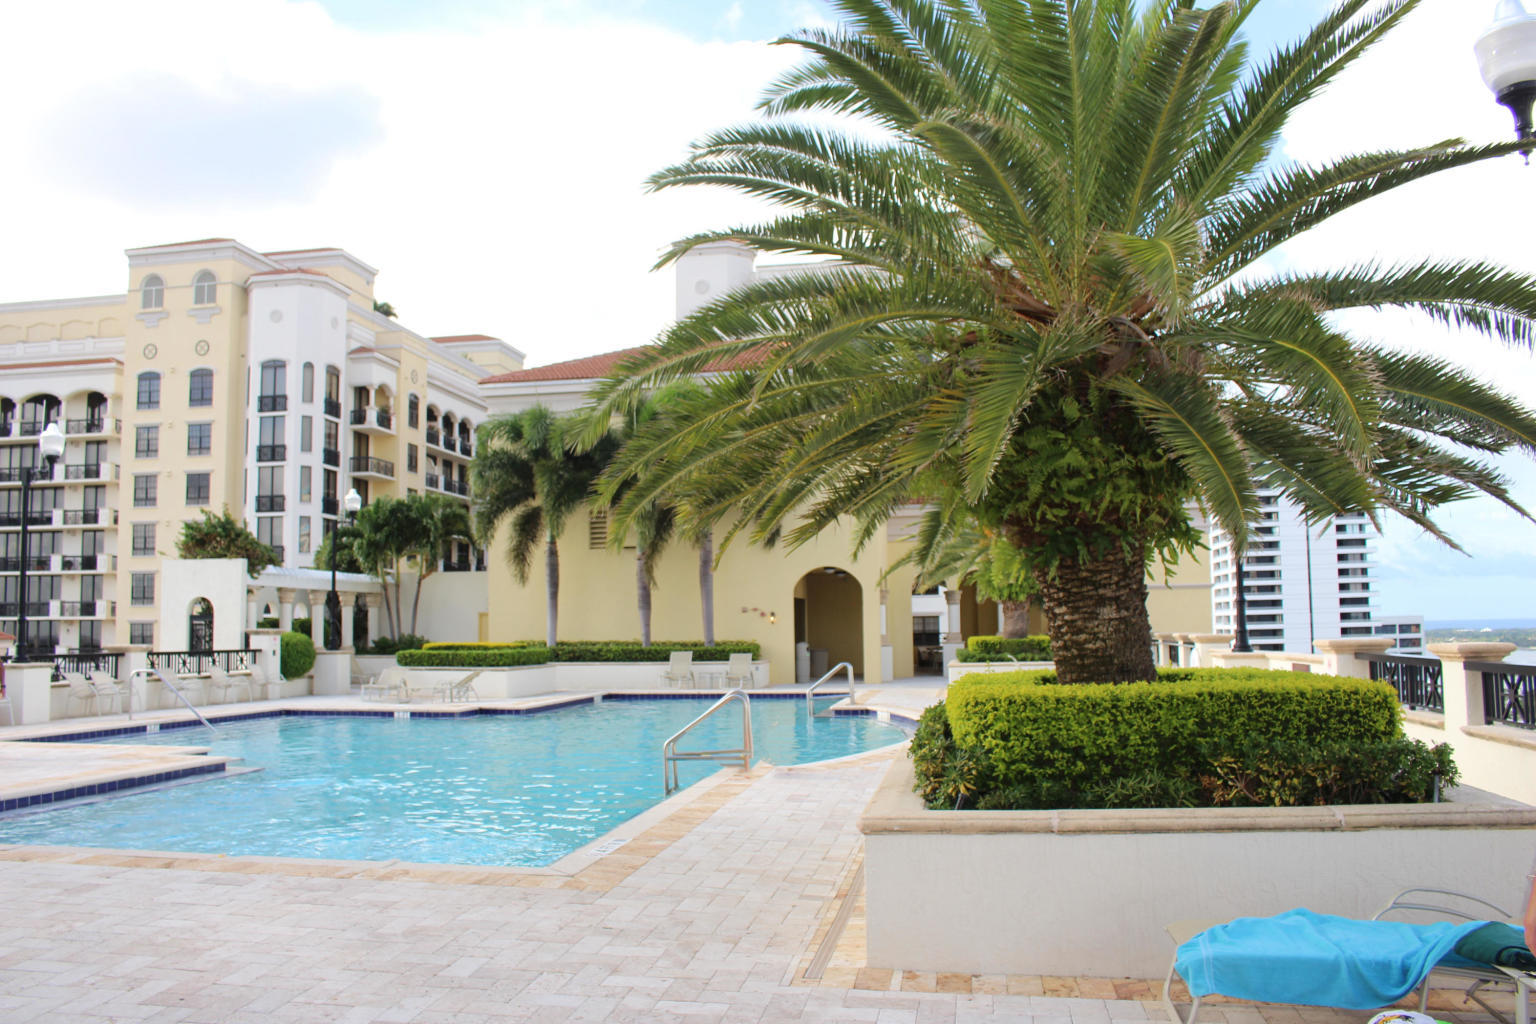 Home for sale in One city plaza. West Palm Beach Florida